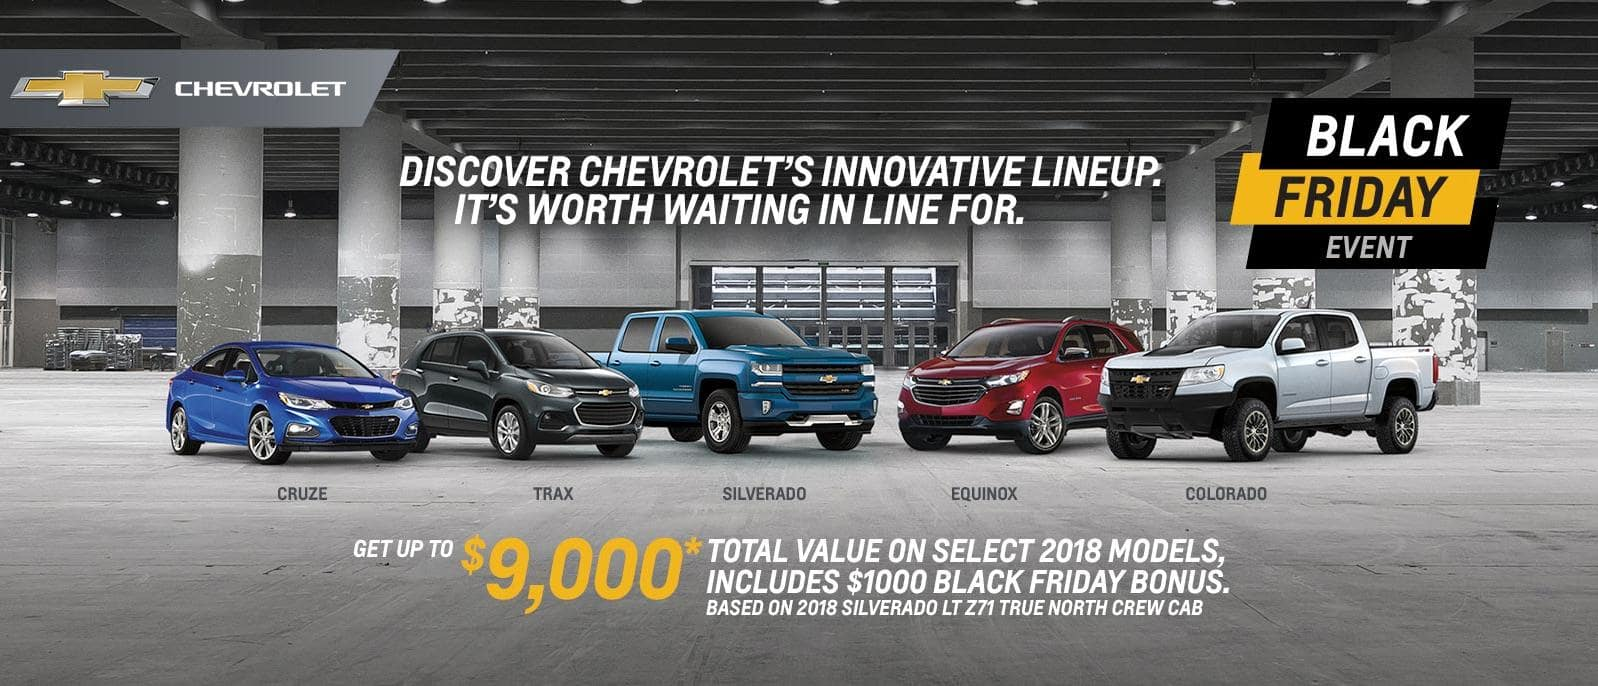 Black Friday Event 2018 Chevrolet Silverado Cruze Colorado VanDusen Ajax 1600x868